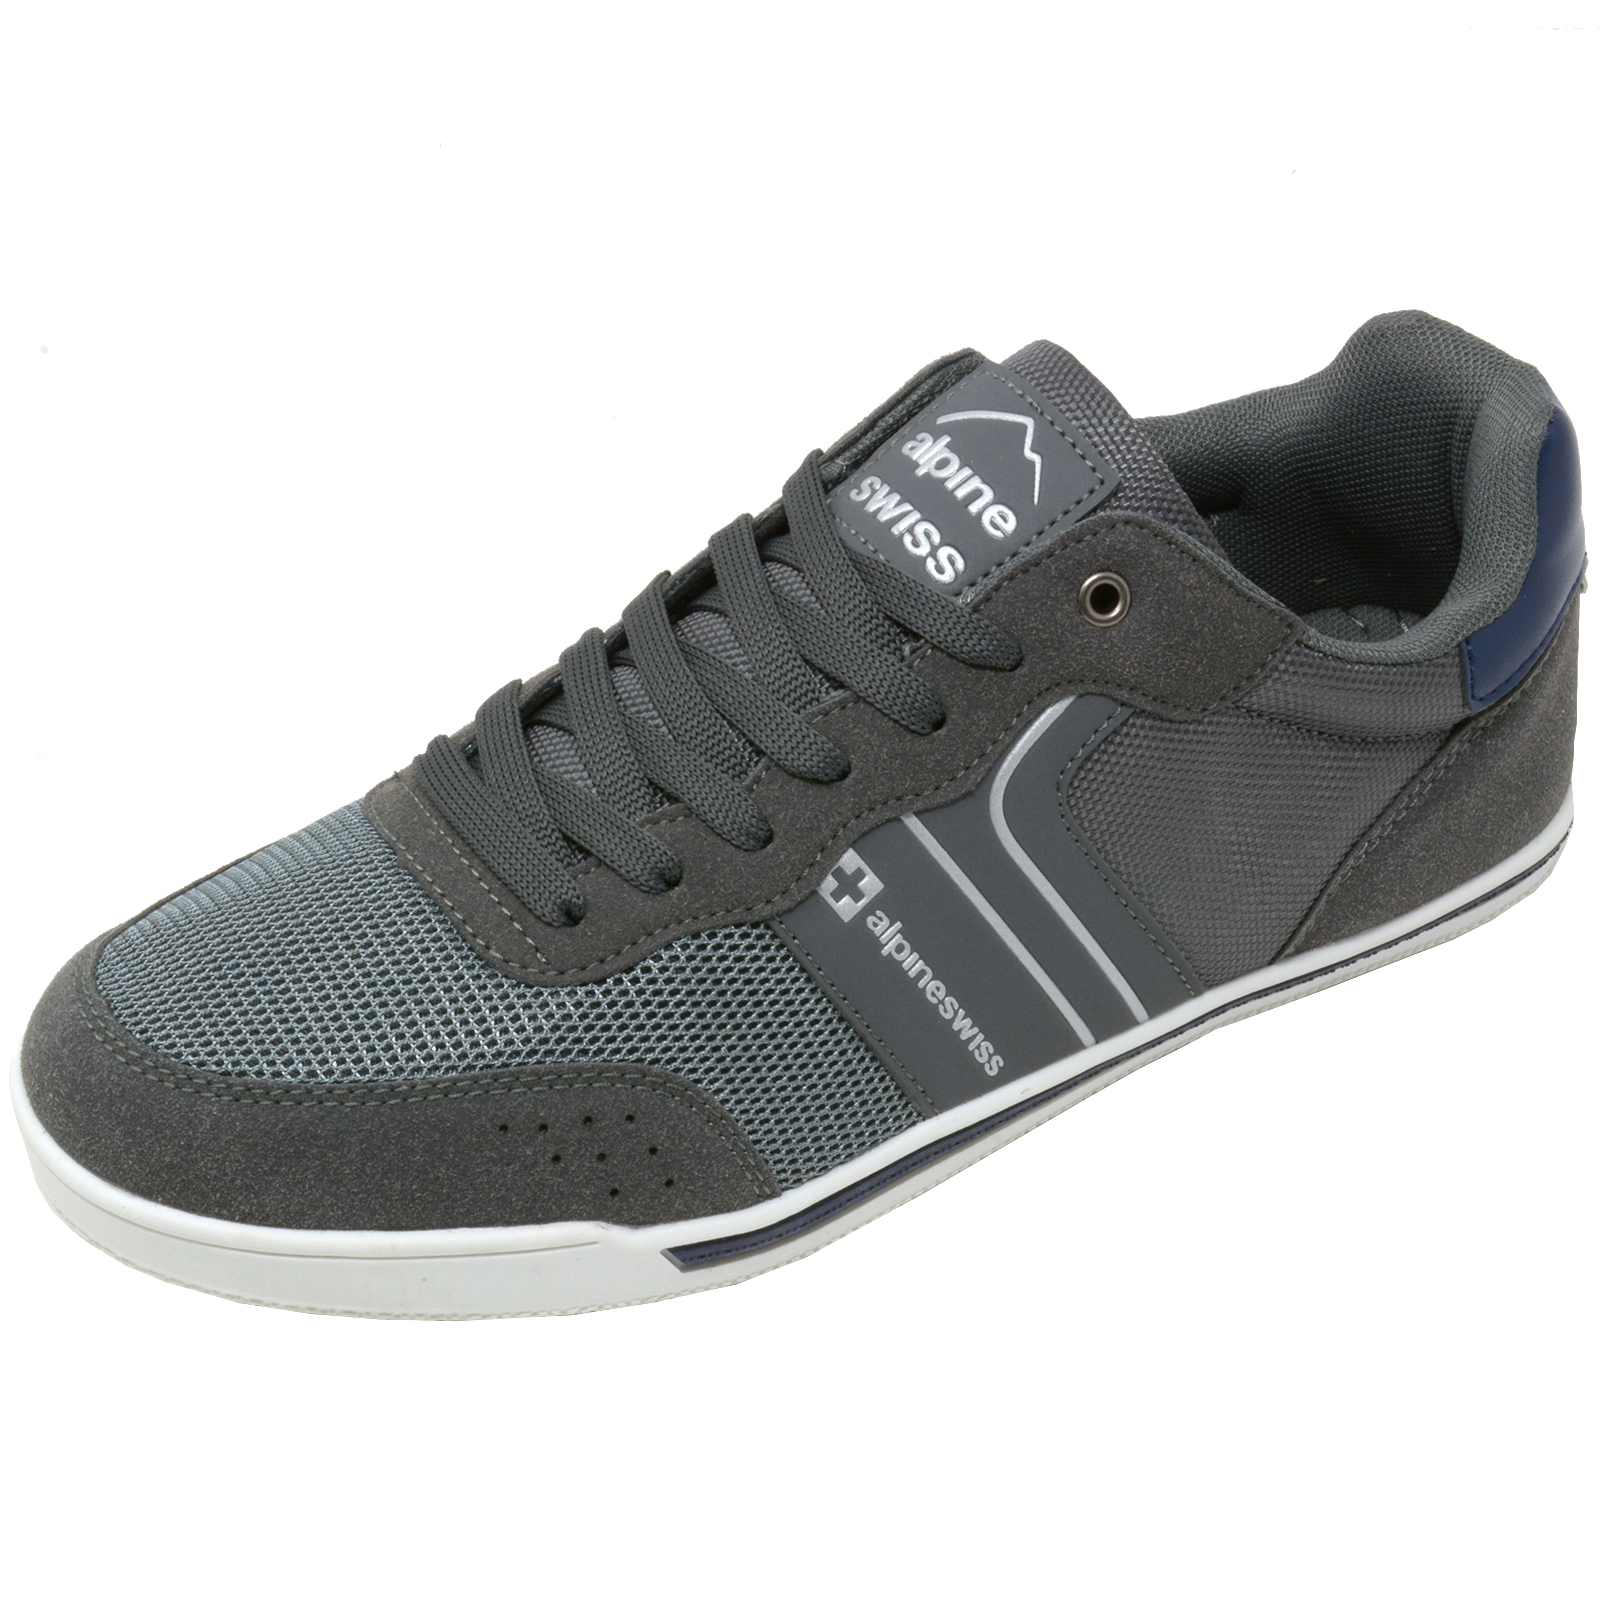 Alpine-Swiss-Liam-Mens-Fashion-Sneakers-Suede-Trim-Low-Top-Lace-Up-Tennis-Shoes thumbnail 30